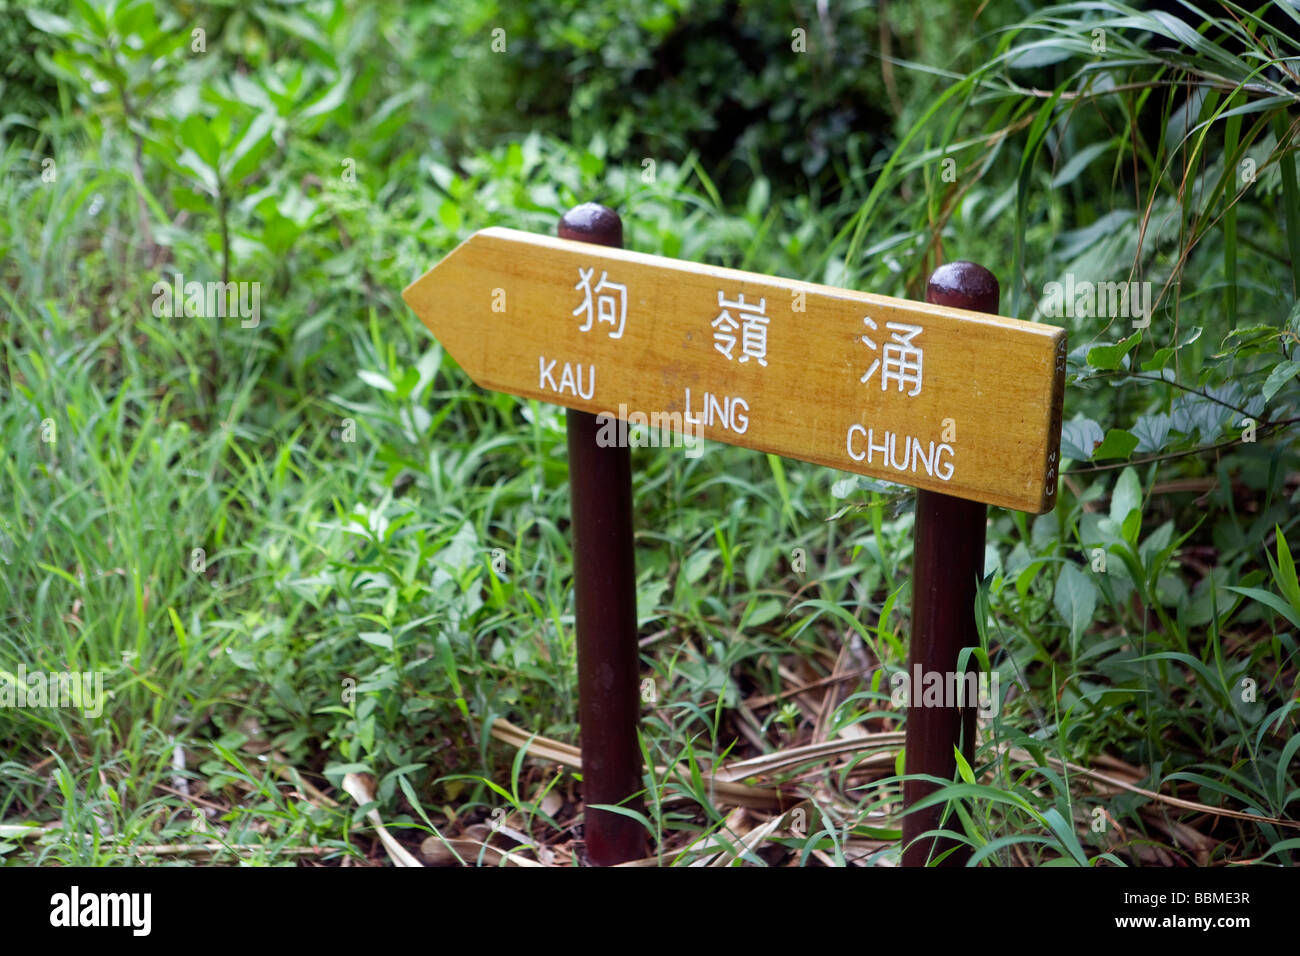 China, Hong Kong, Lantau Island. Walking and trekking on the Lantau Trail, the footpaths are very well made and - Stock Image